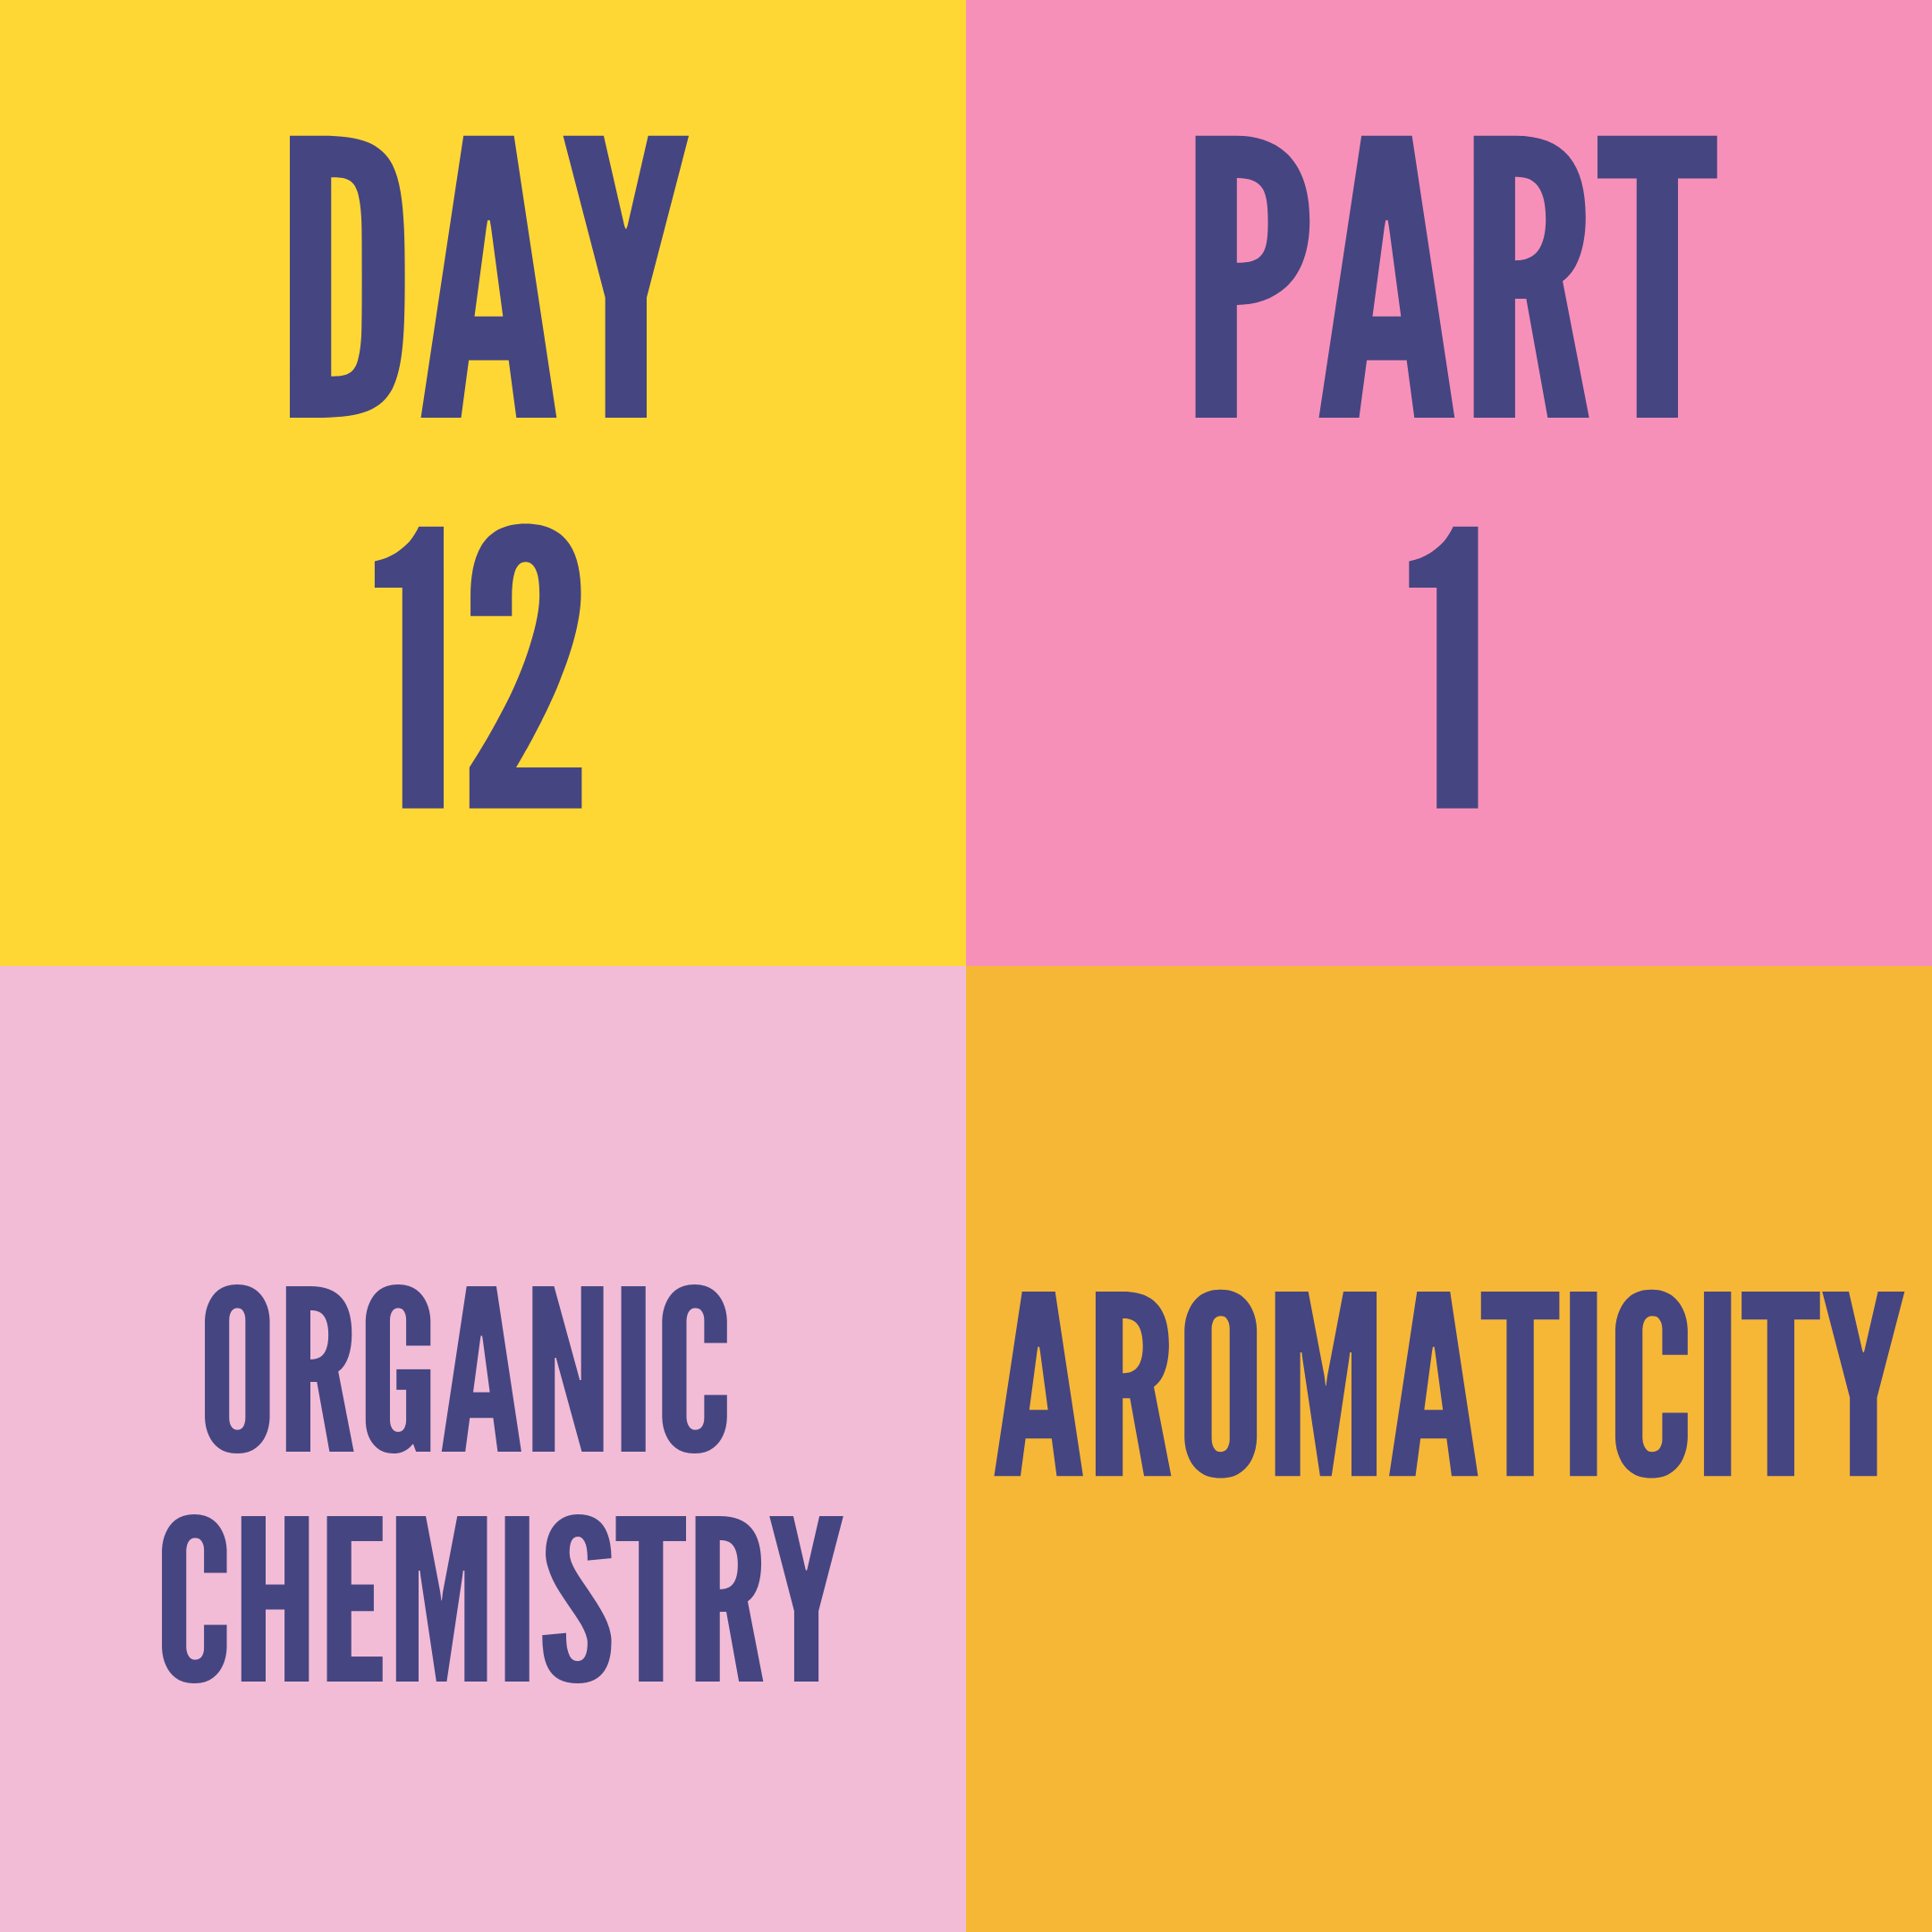 DAY-12 PART-1 AROMATICITY